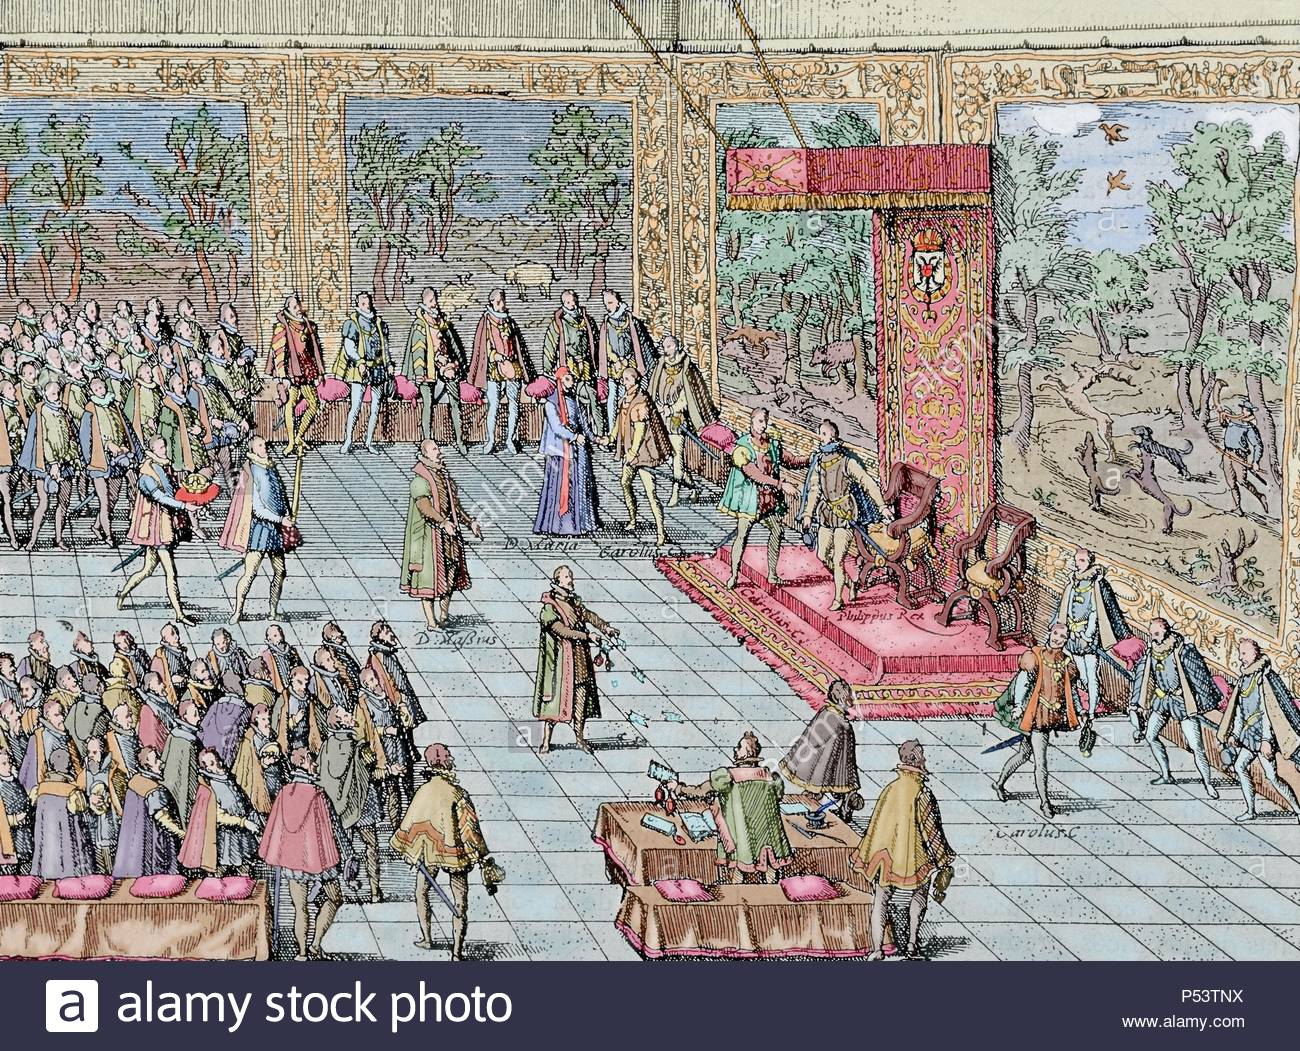 Charles I of Spain and V of Germany (1500-1558). King of Spain (1517-1556) and Emperor of Germany (1519-1556). First Spanish monarch of the House of Austria. Son of Philip the Handsome and Joanna the Mad. Abdication of Charles V in Brussels, on 25 October 1555, to his son Philip II of Spain. Colored engraving. - Stock Image